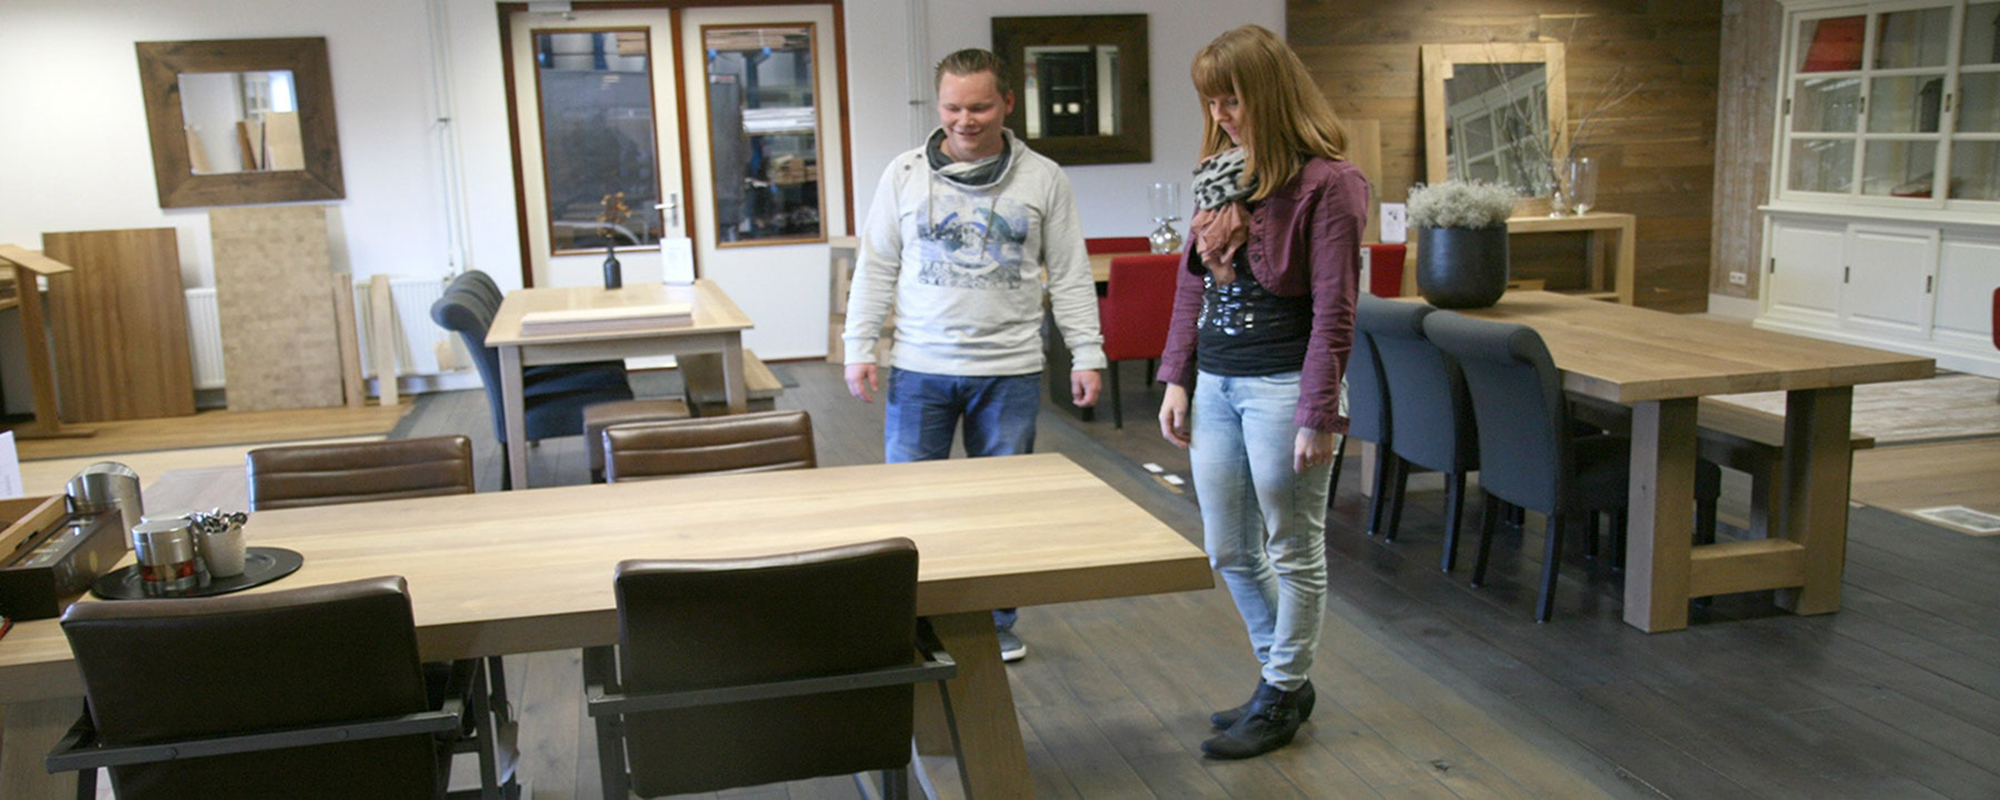 kies uw model tafel in de showroom